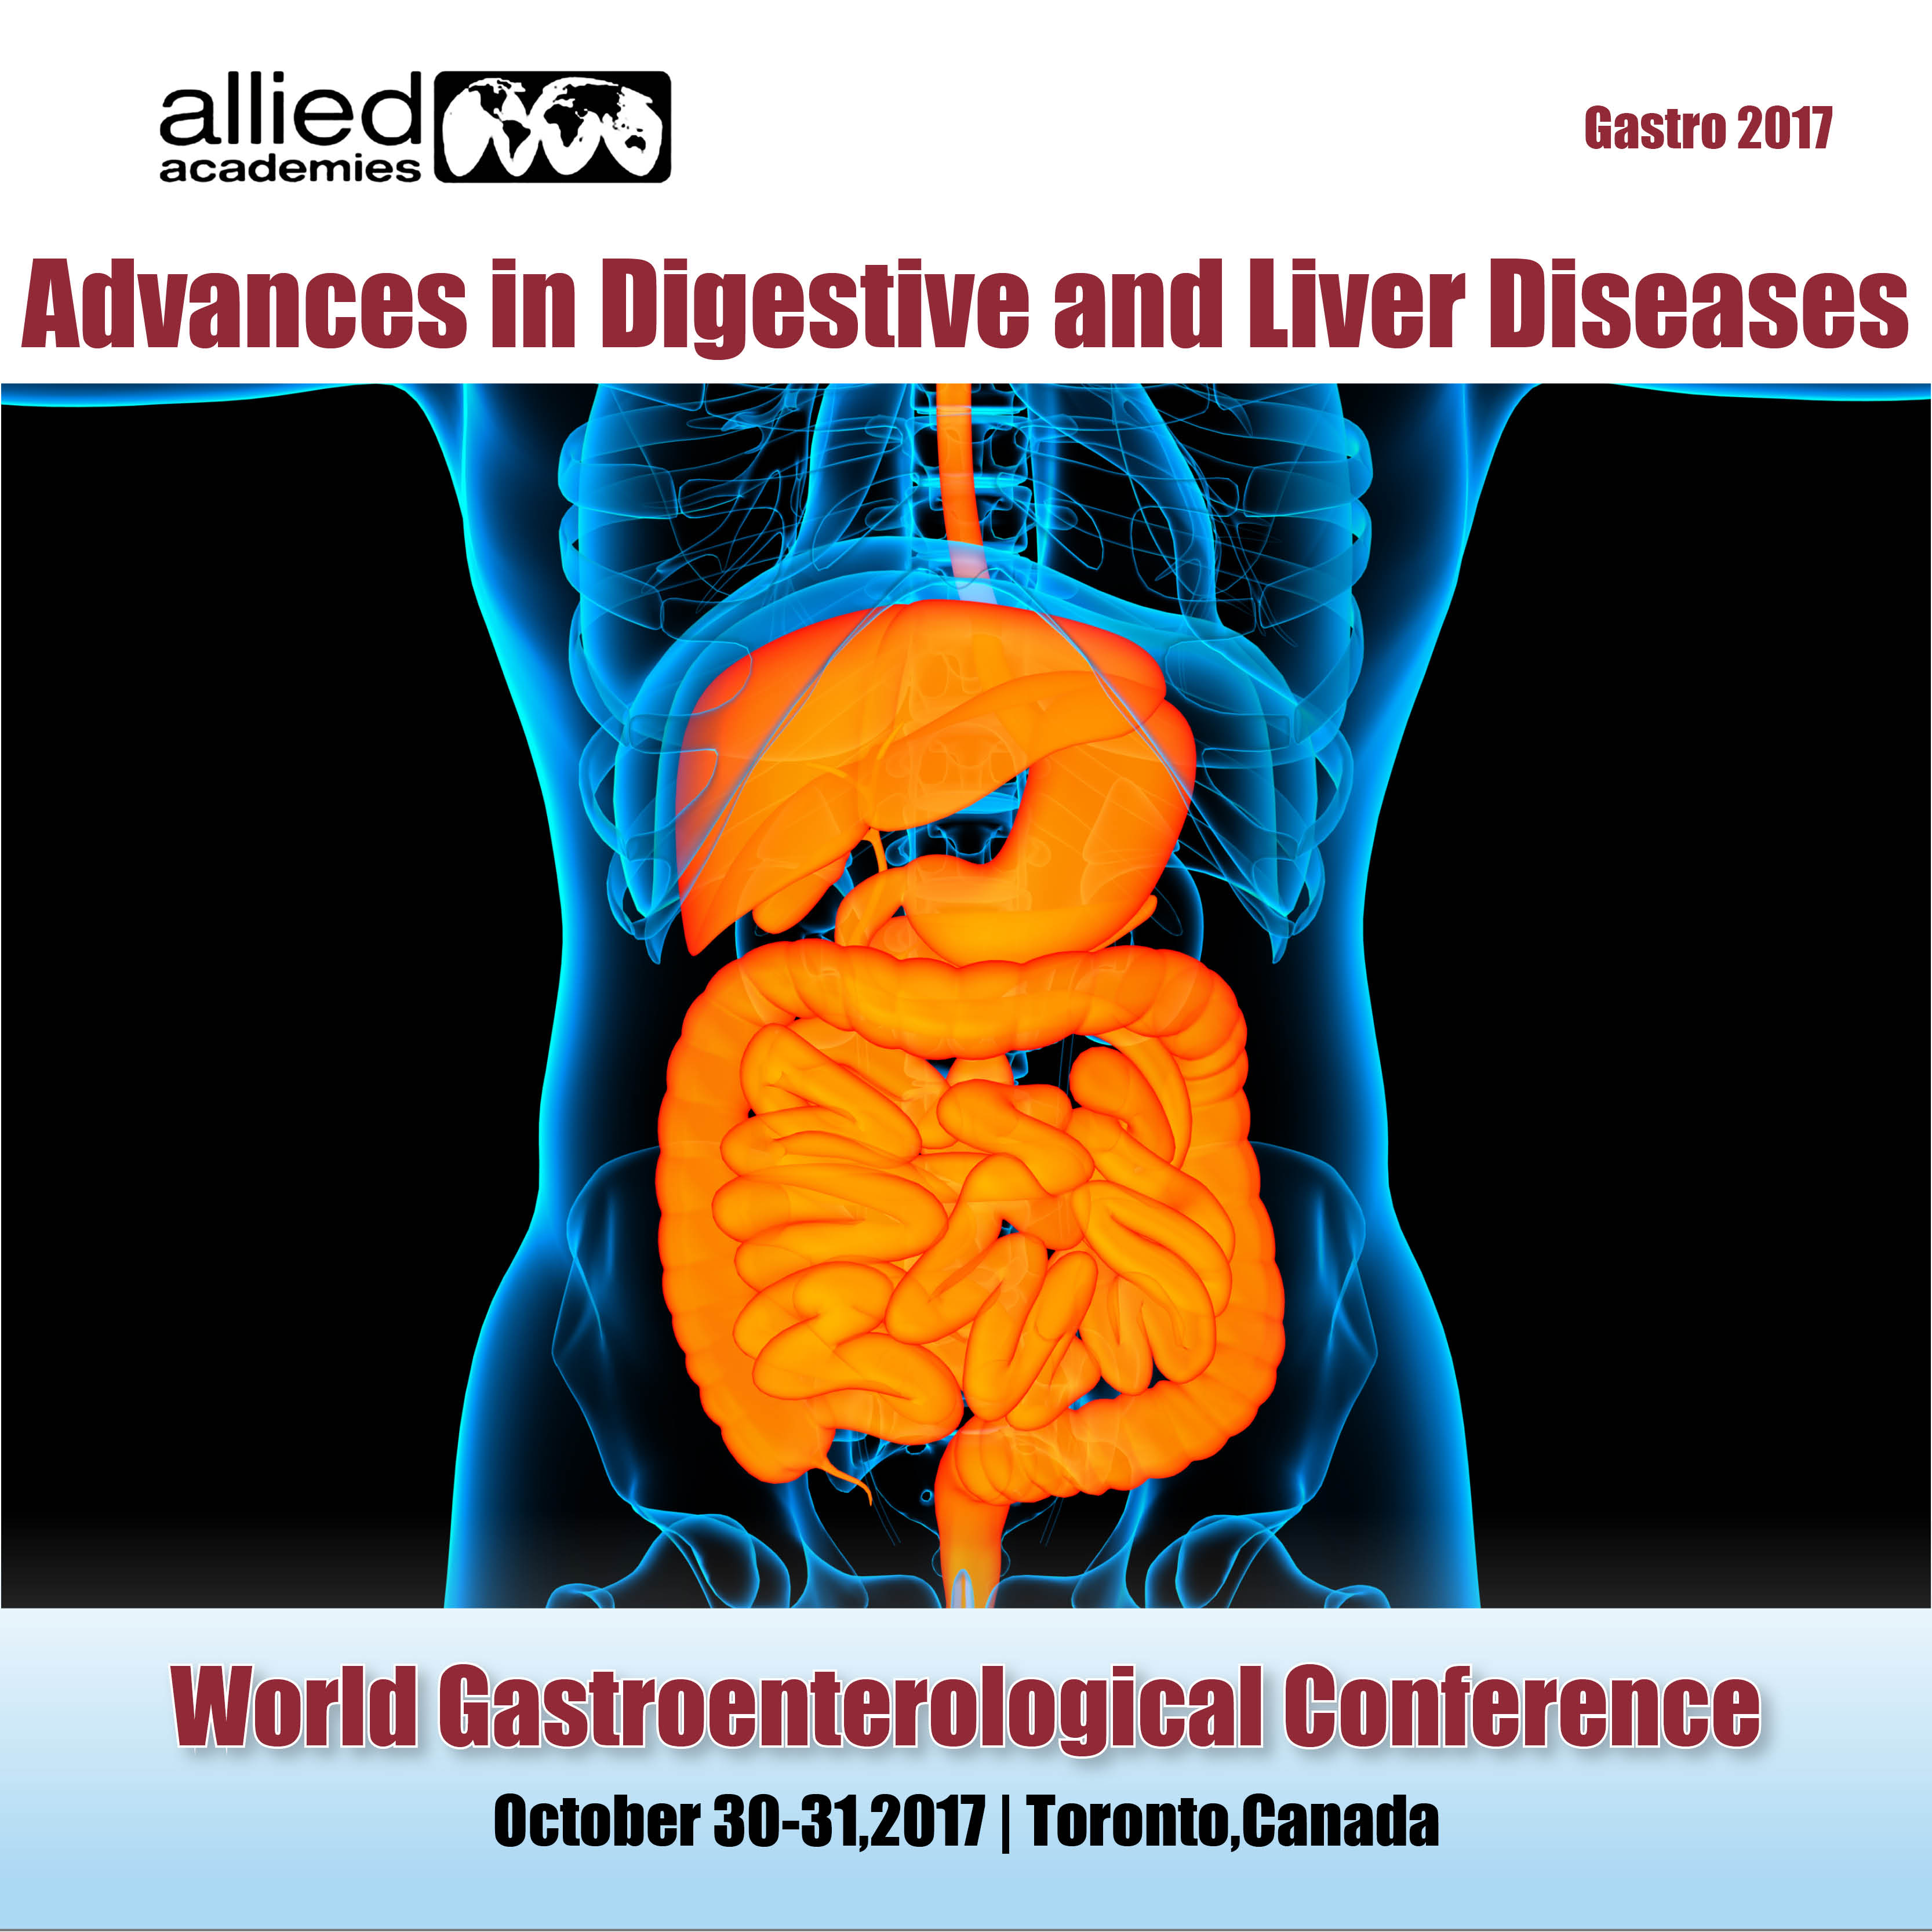 Advances in Digestive and Liver Diseases Photo